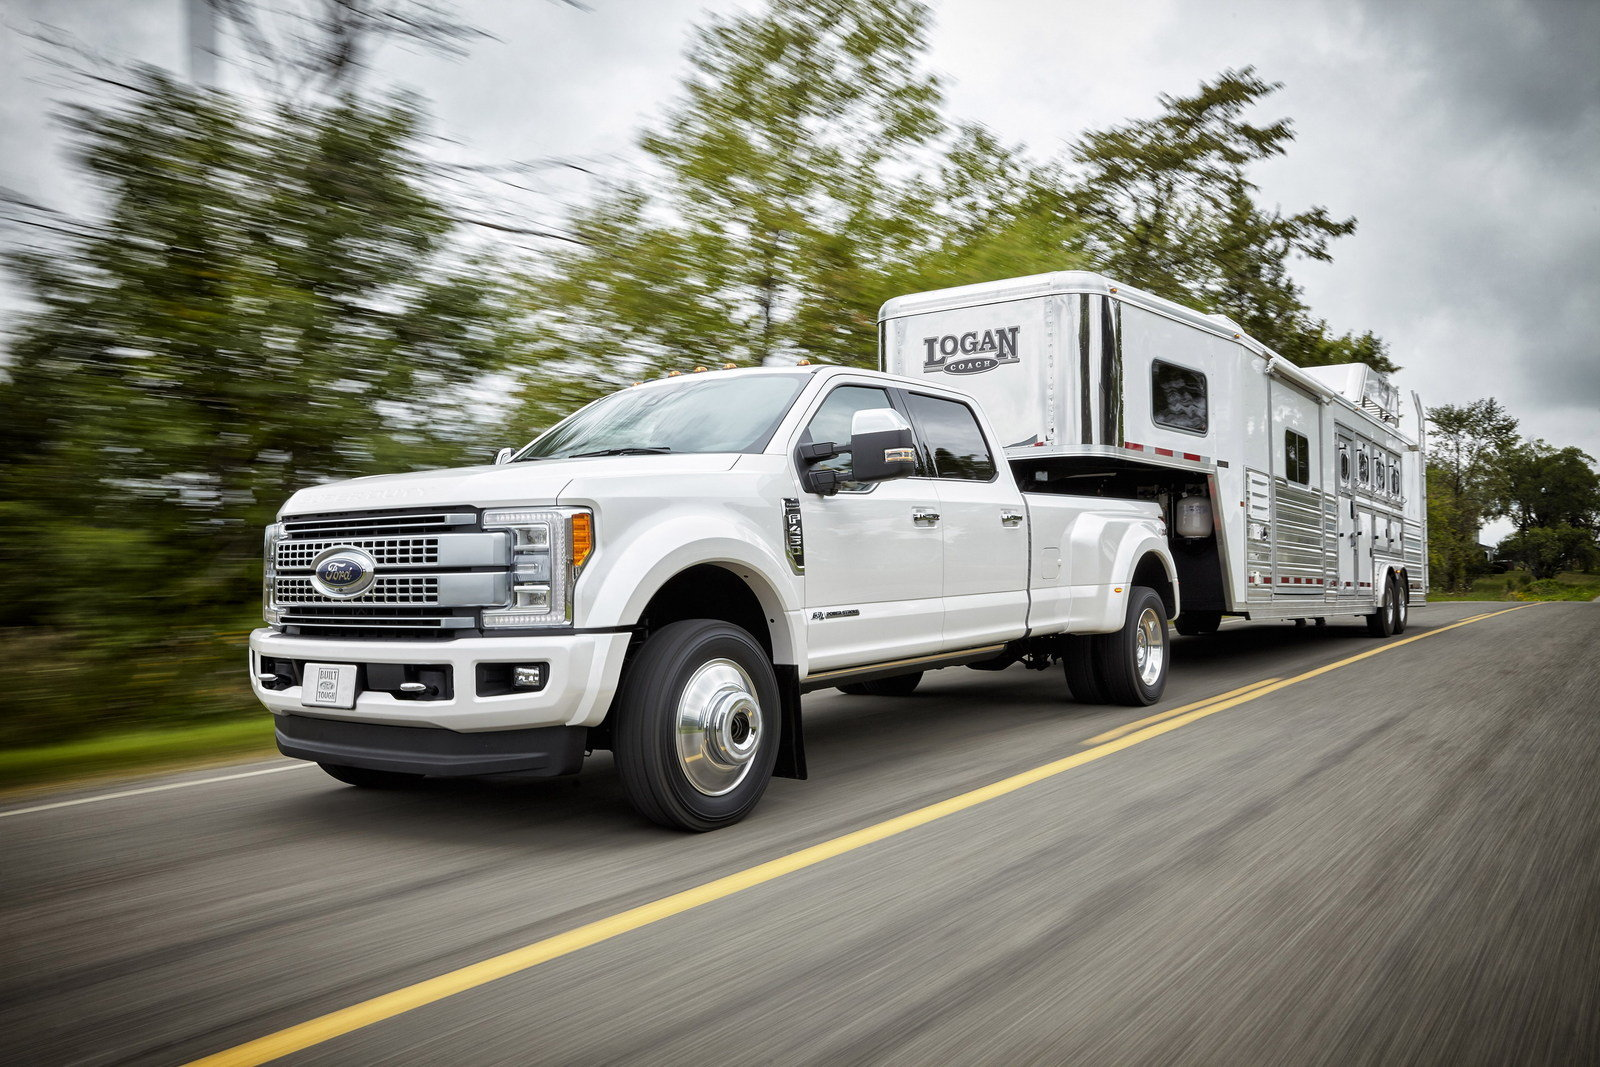 2017 ford super duty picture 648431 truck review top speed. Black Bedroom Furniture Sets. Home Design Ideas